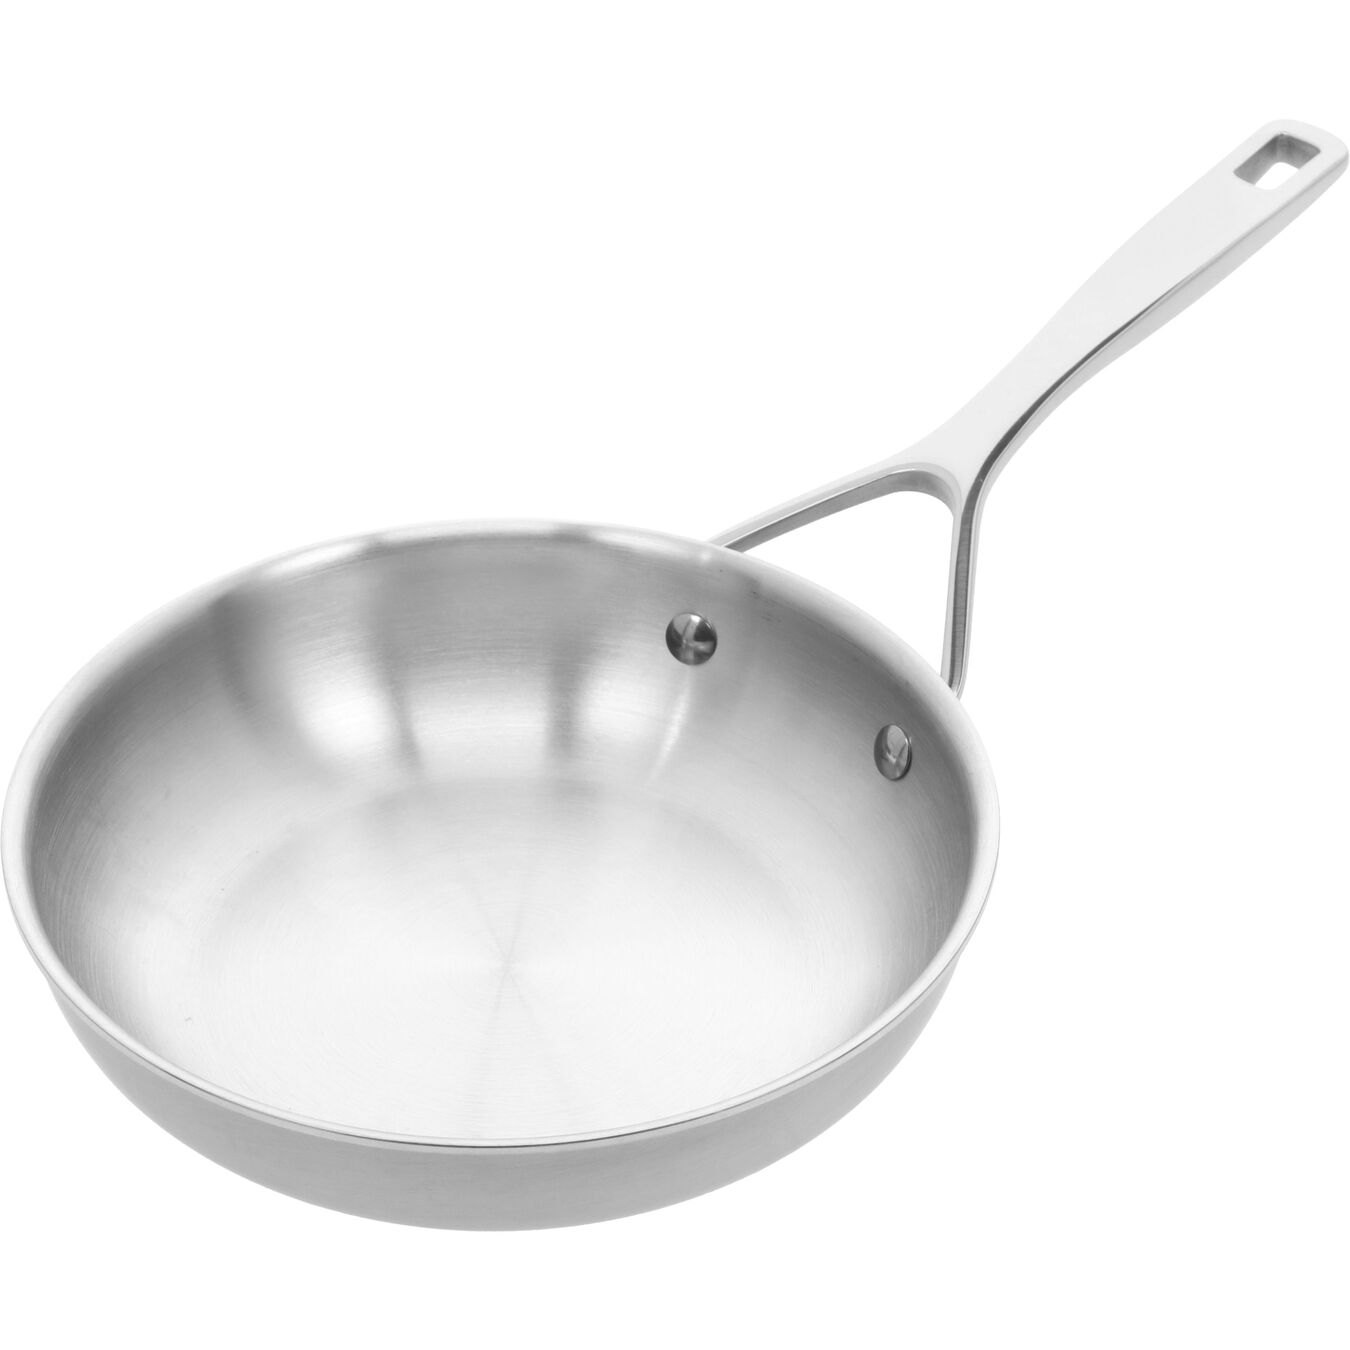 8-inch, 18/10 Stainless Steel, Non-stick, Frying pan,,large 4